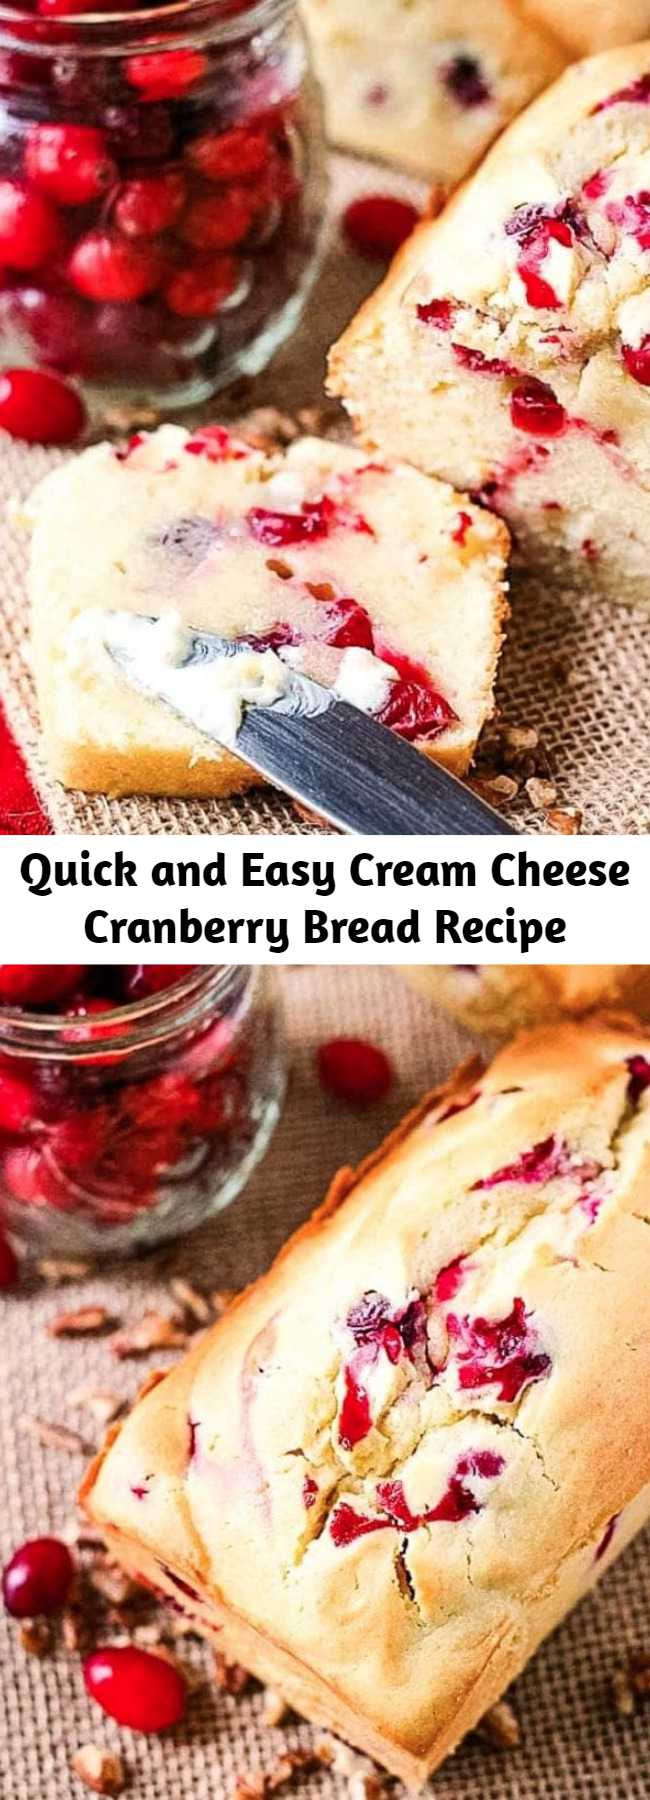 Quick and Easy Cream Cheese Cranberry Bread Recipe - This sweet cream cheese bread compliments the tart cranberries it's loading with resulting in an amazing Cream Cheese Cranberry Bread! If you are looking for a new quick bread recipe that is perfect for the fall and Thanksgiving you have found it. It's so amazingly soft and tender, plus quick and easy to make. I love a big slice with butter and a mug of coffee or for a quick snack in the afternoon! #cranberry #bread